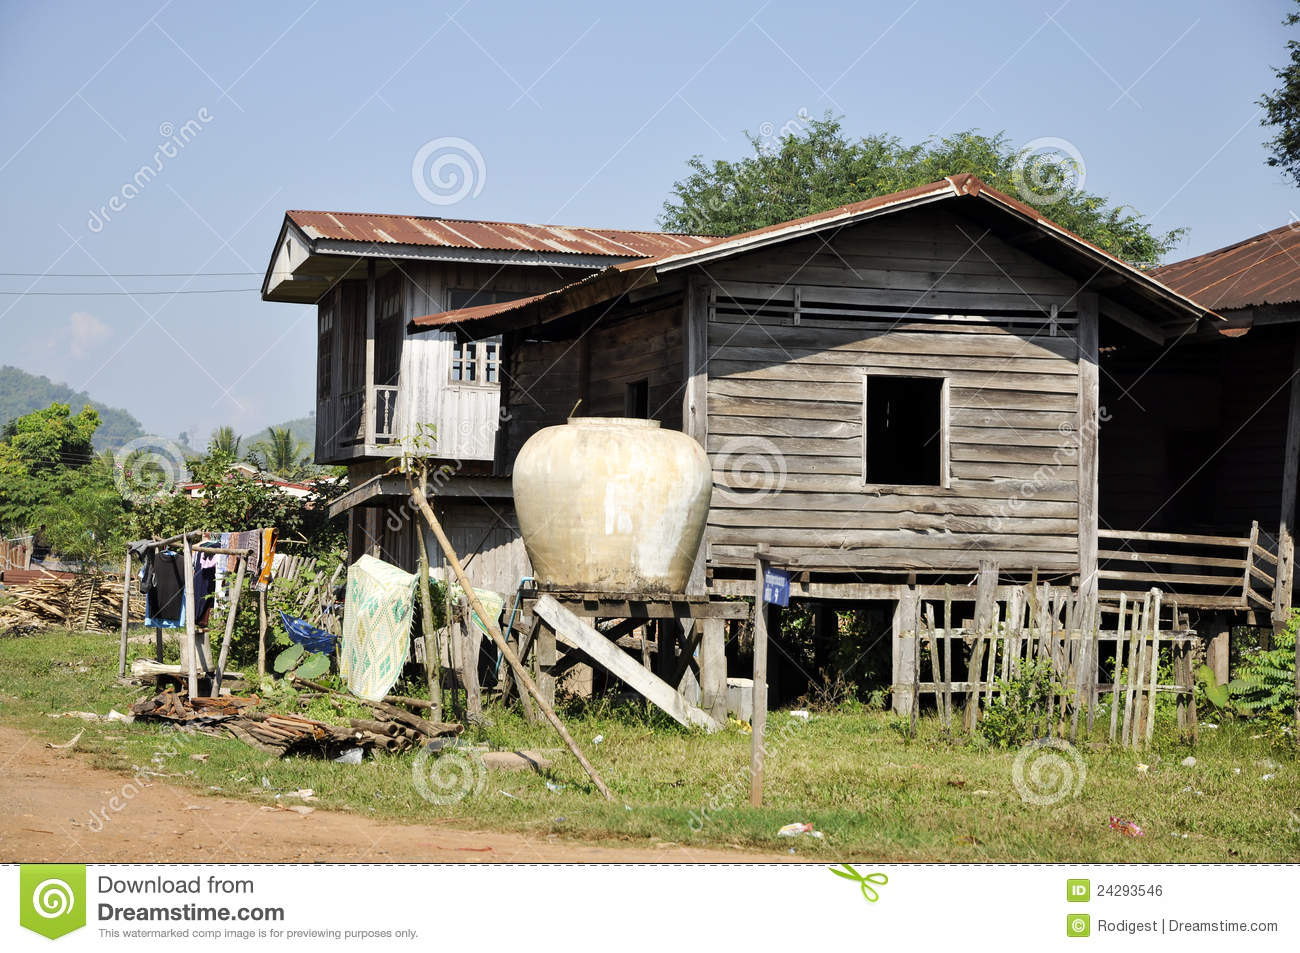 Old style country vintage house thailand retro royalty free stock image image 24293546 Vintage home architecture